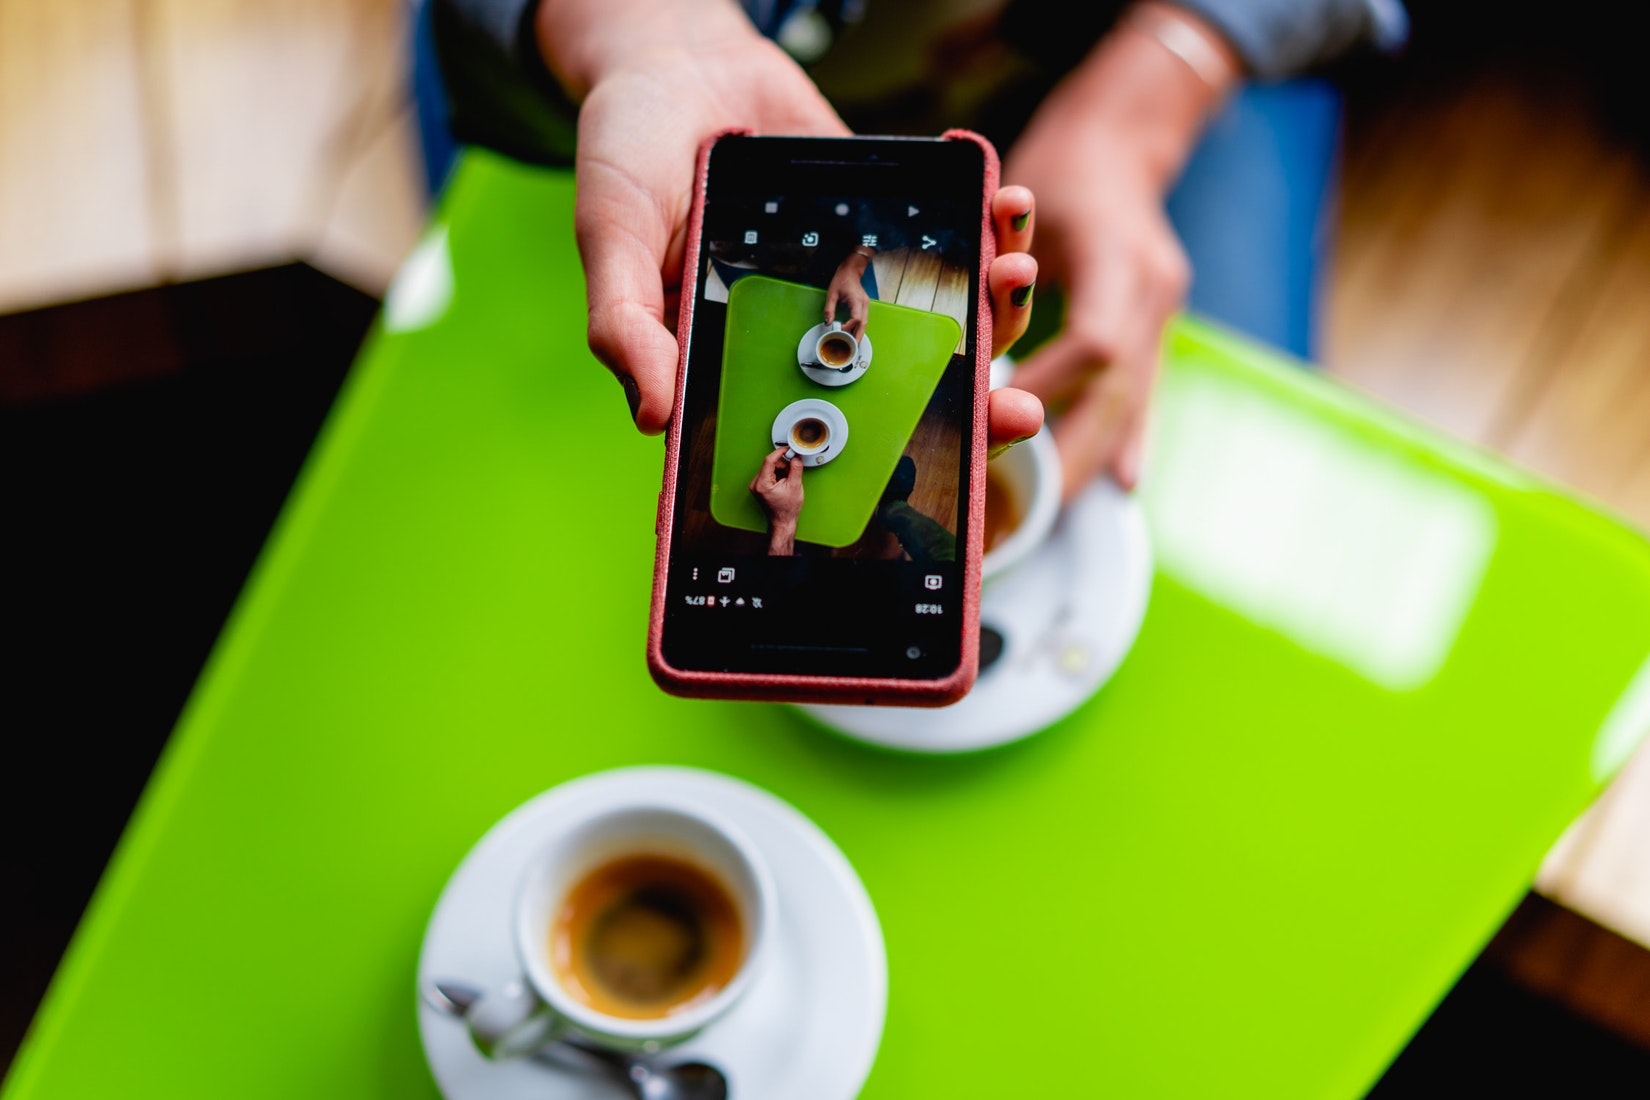 Photo of a cellphone taking a picture of cups of coffee on a green teable